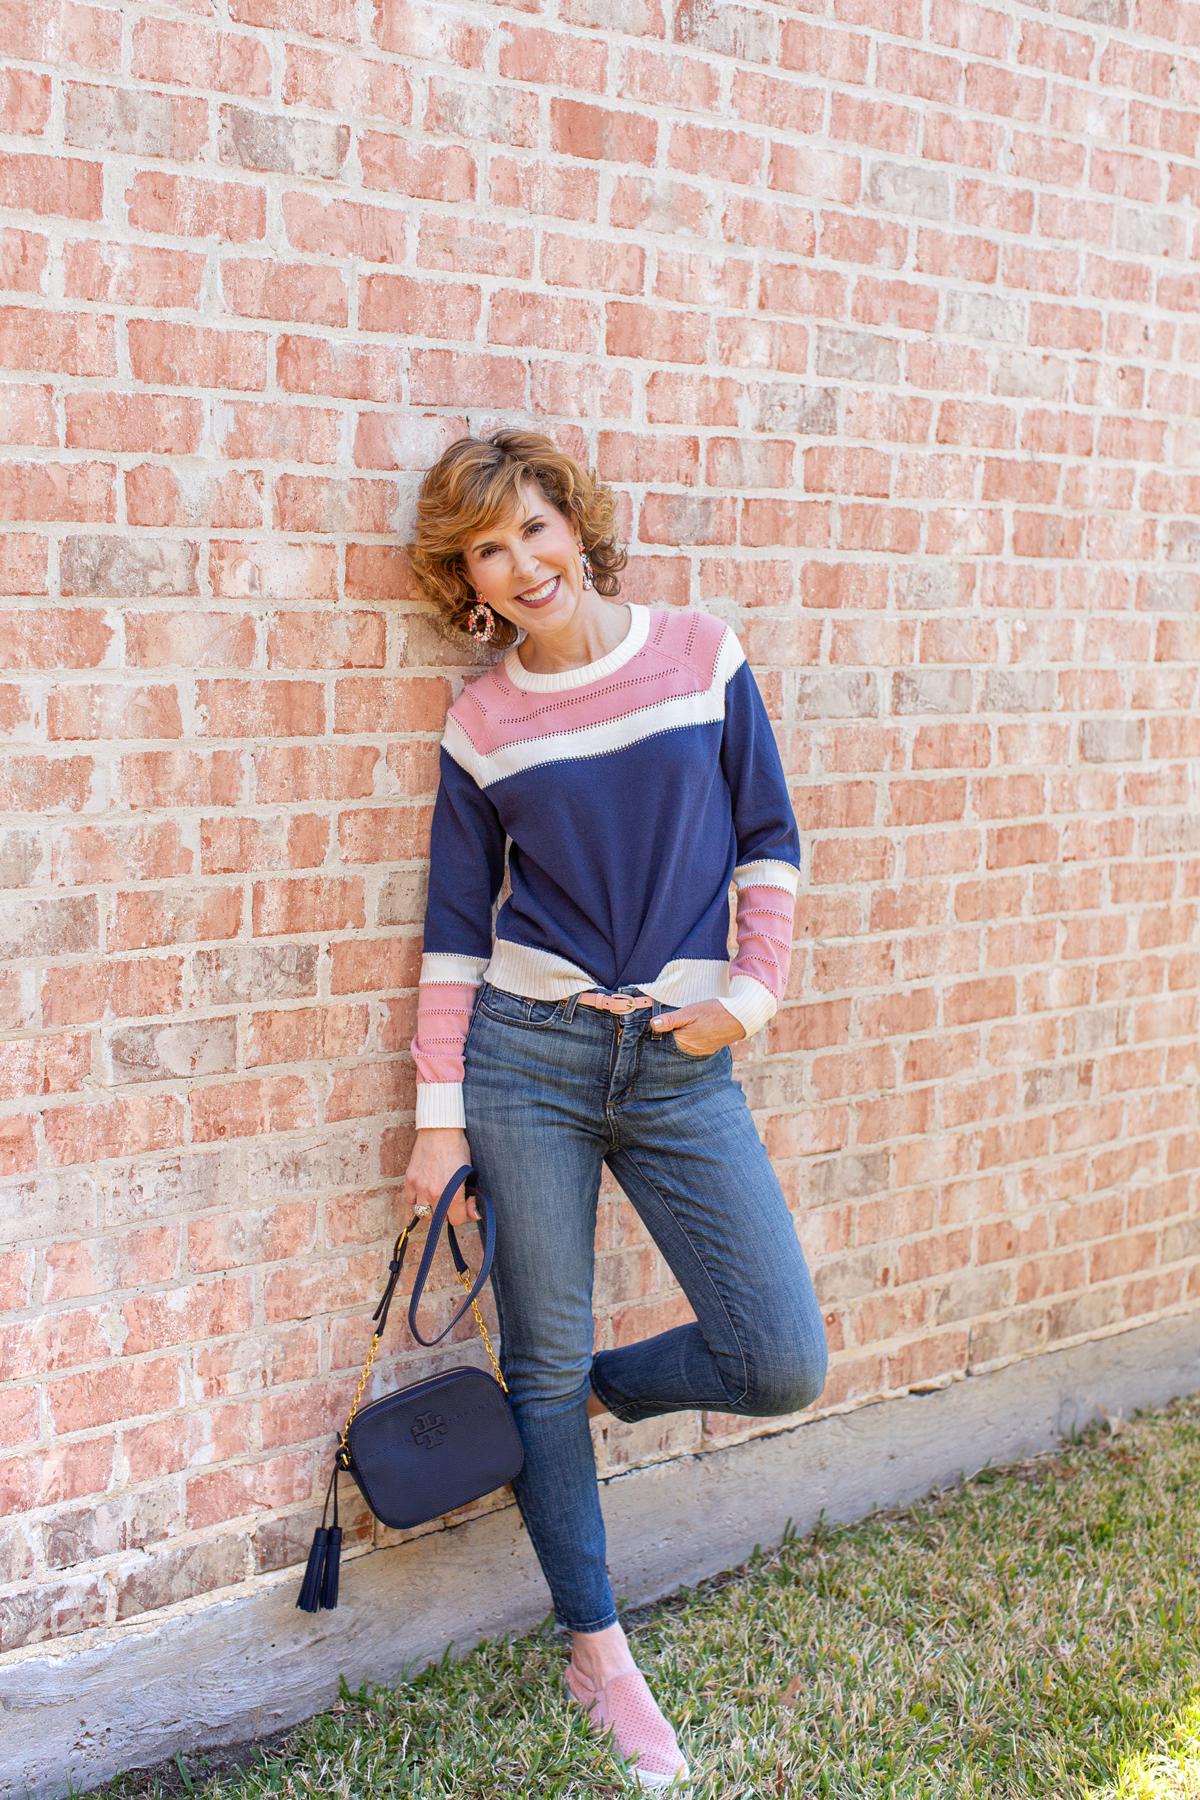 woman wearing pink and navy sweater and jeans leaning against a pink brick wall